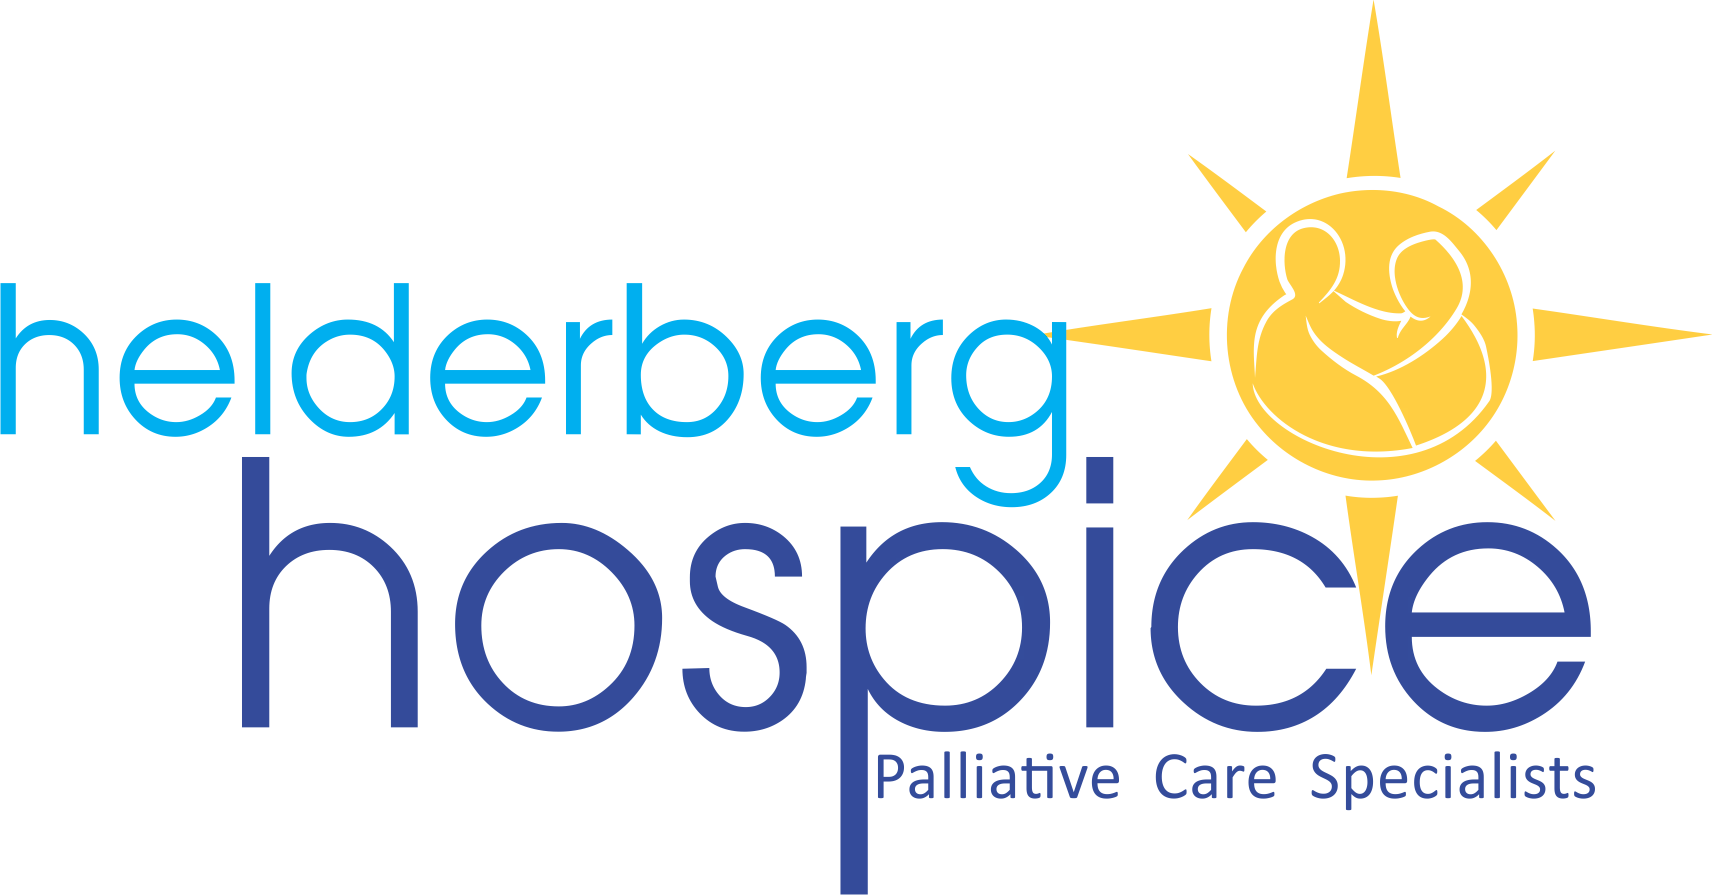 Helderberg_Hospice_logo_for_on_computer_use__2019-07_(1)